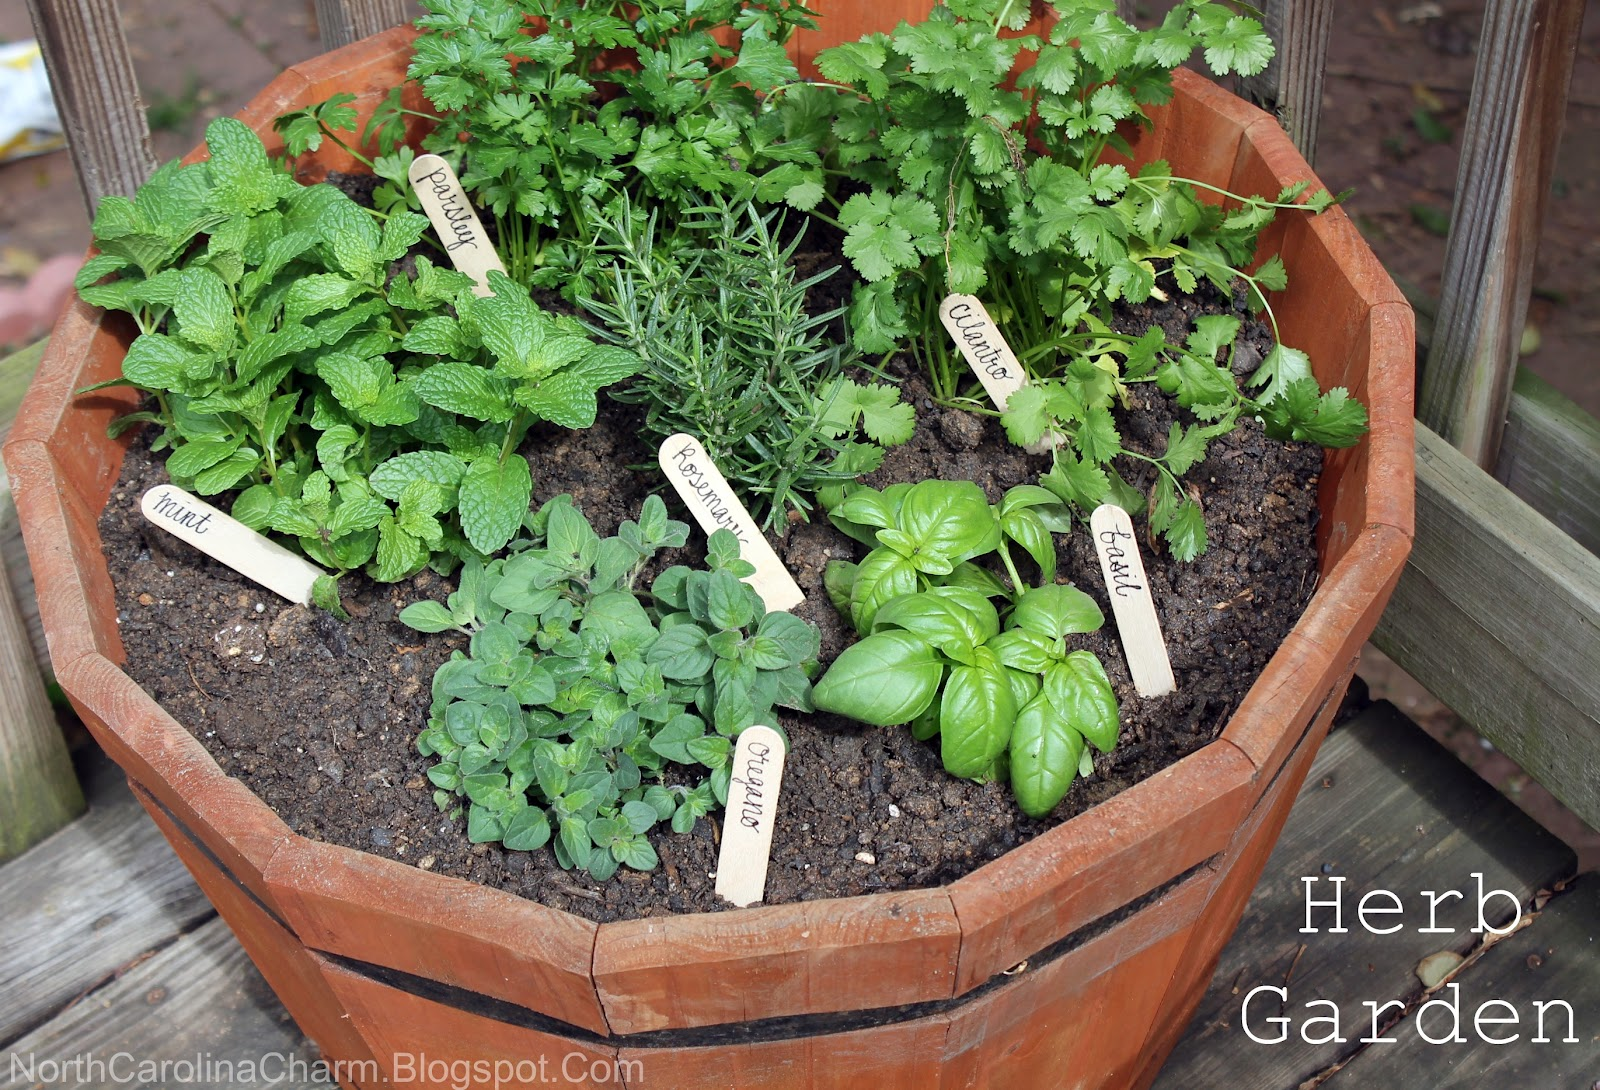 carolina charm diy herb garden, Natural flower